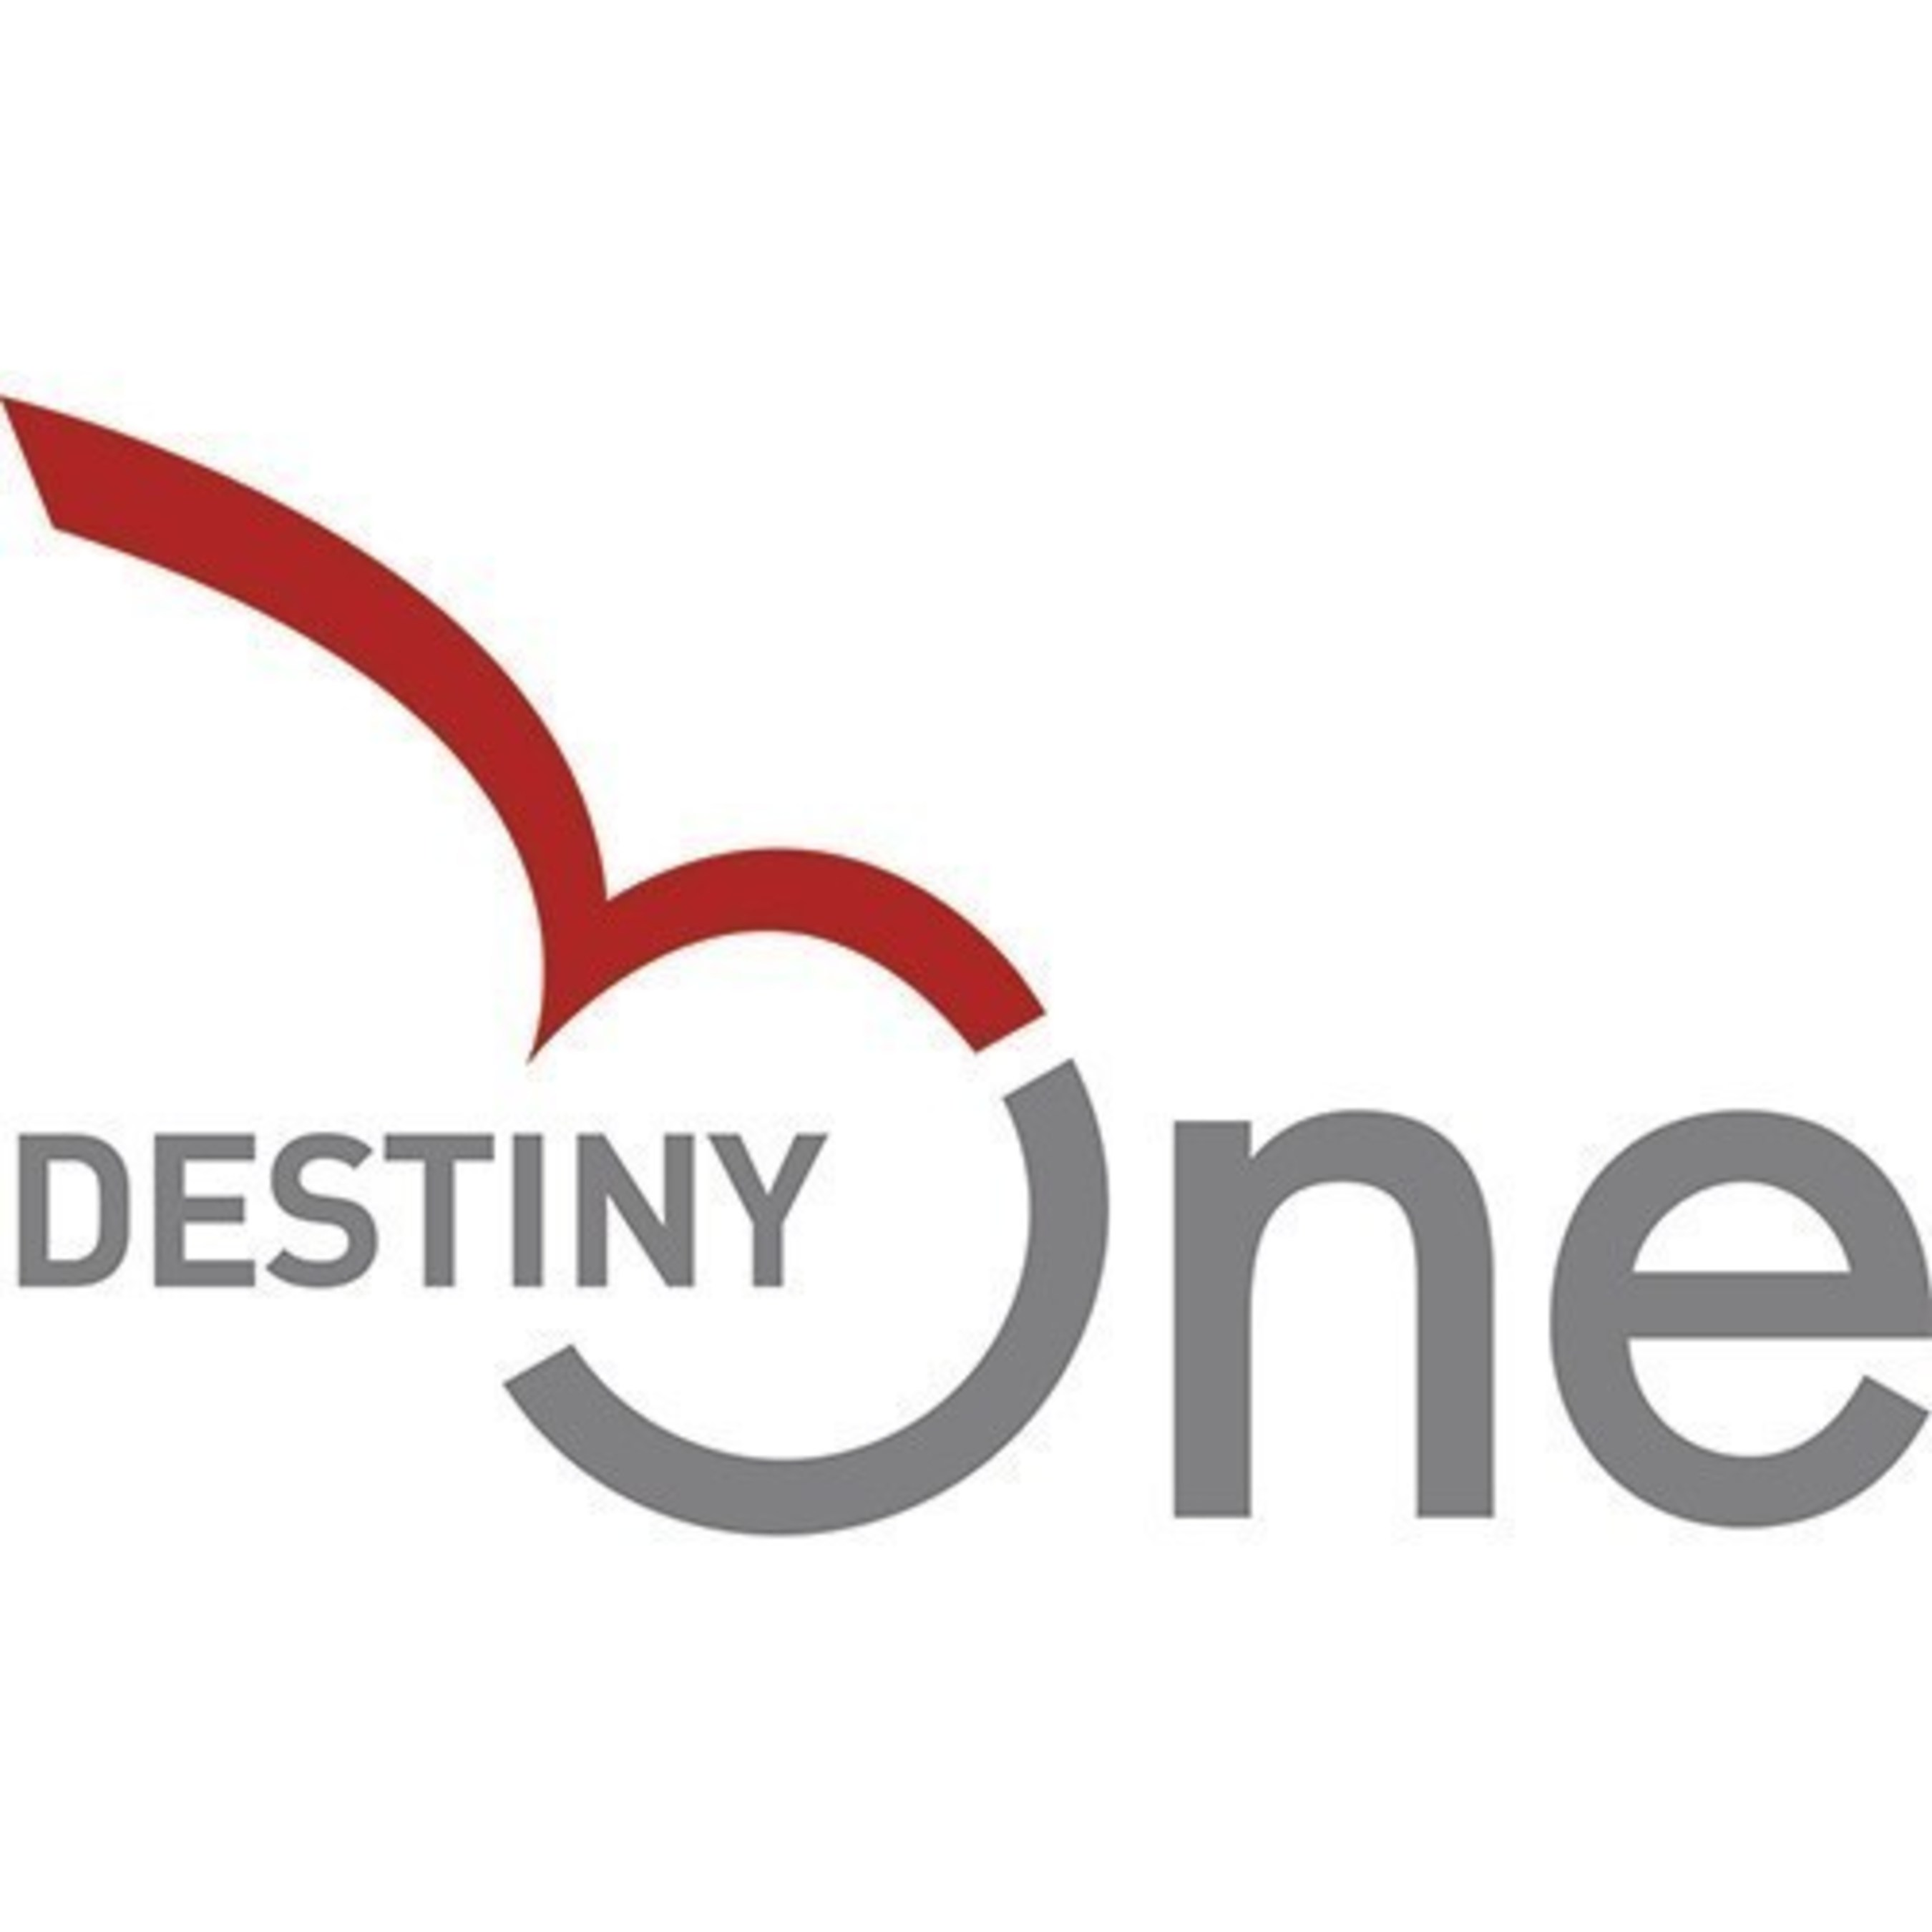 Destiny Solutions Launches Dashboards to Give Clients Unparalleled Business Intelligence